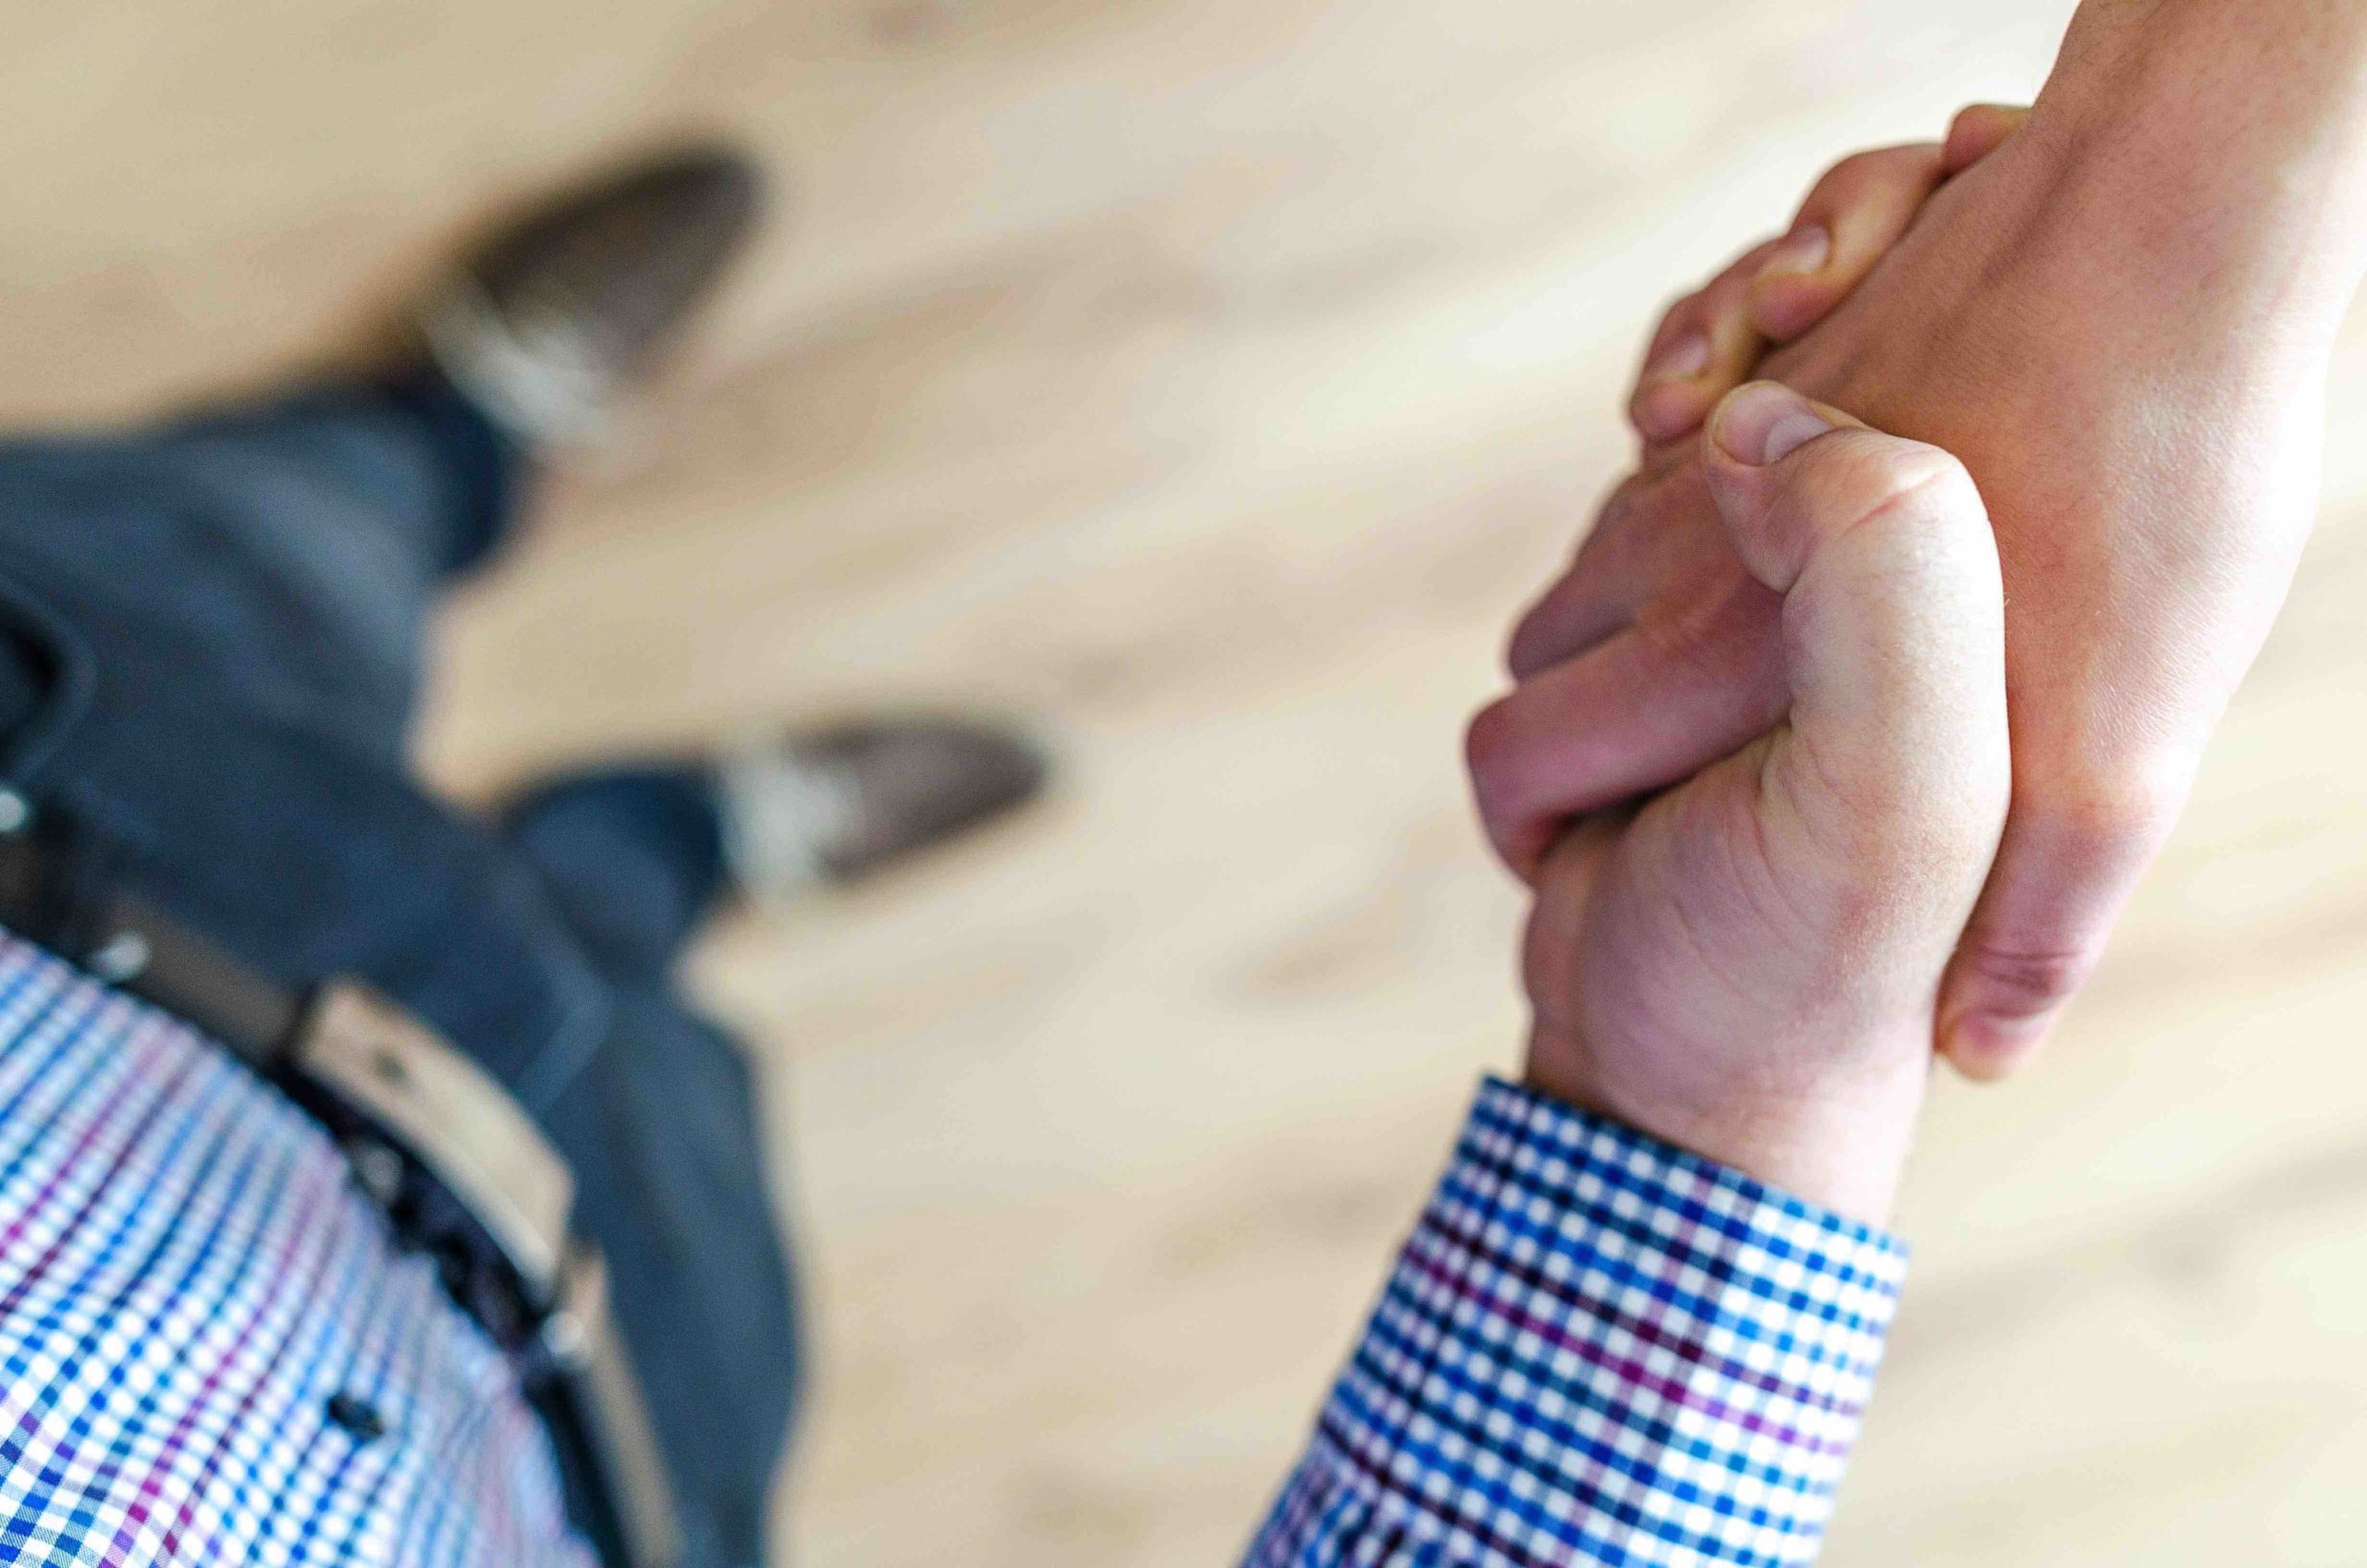 5 Keys to Building Trust in the Workplace